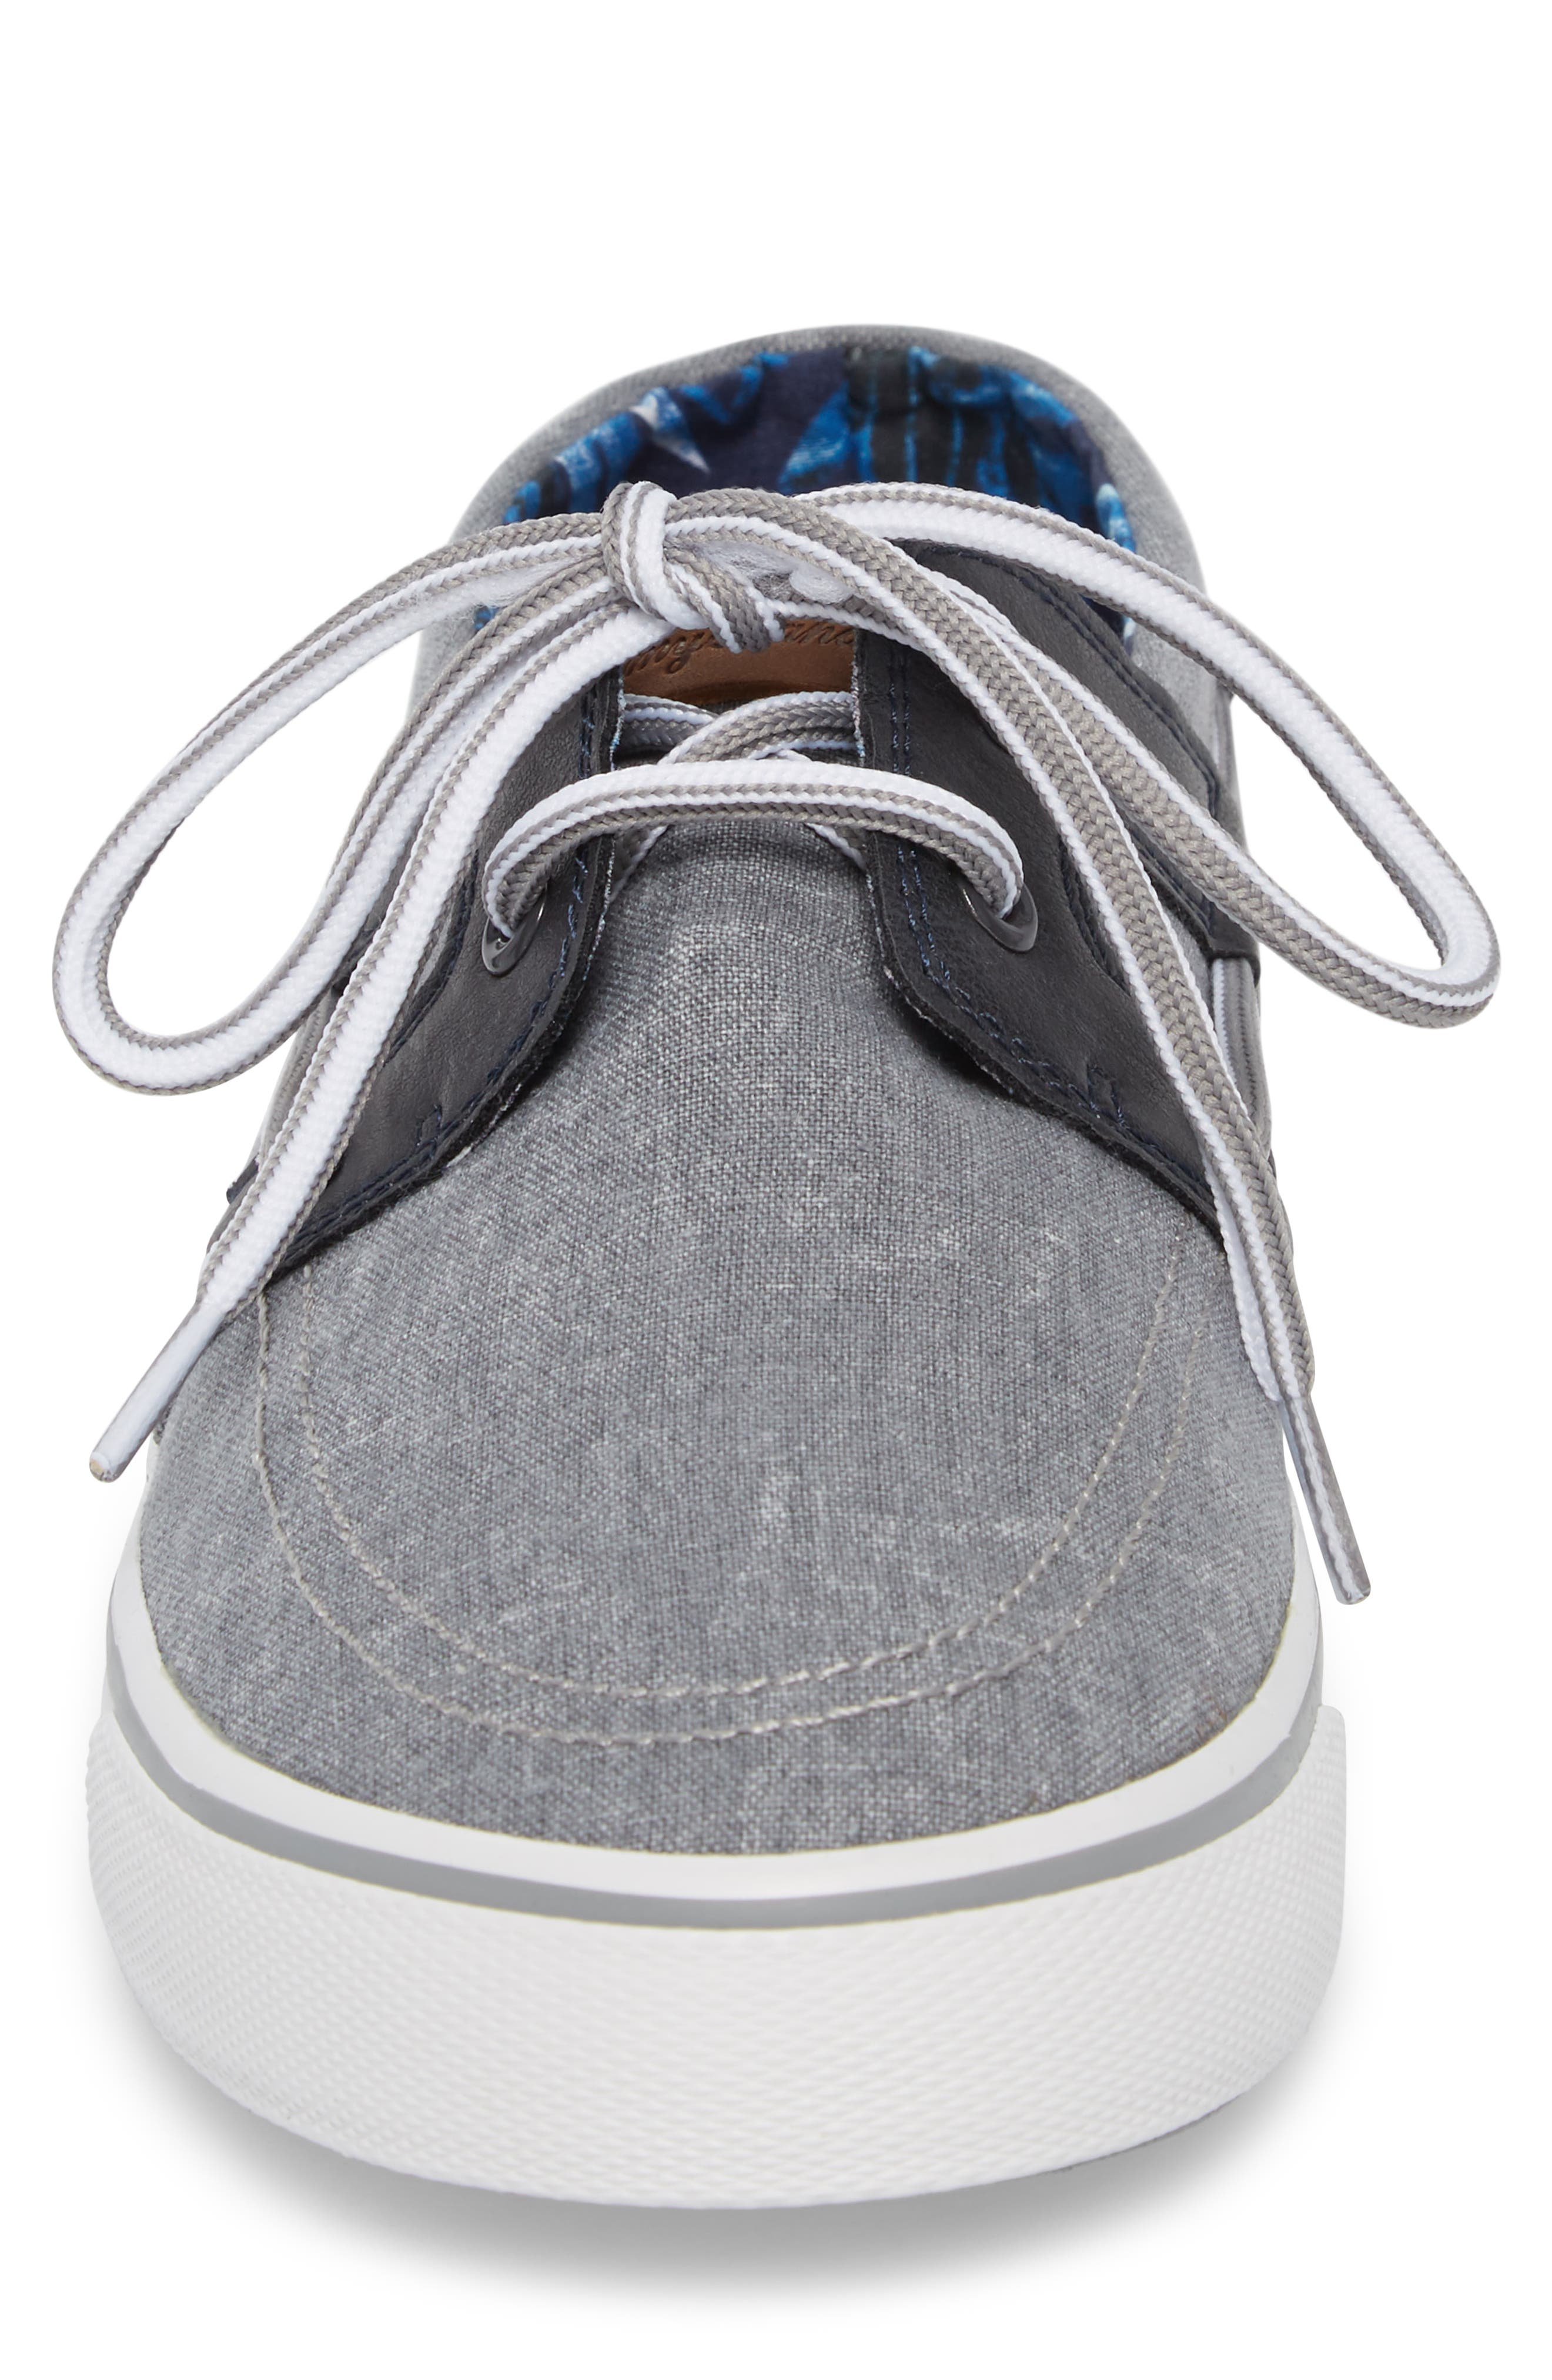 Stripe Breaker Sneaker,                             Alternate thumbnail 4, color,                             GREY/ BLACK LINEN/ LEATHER